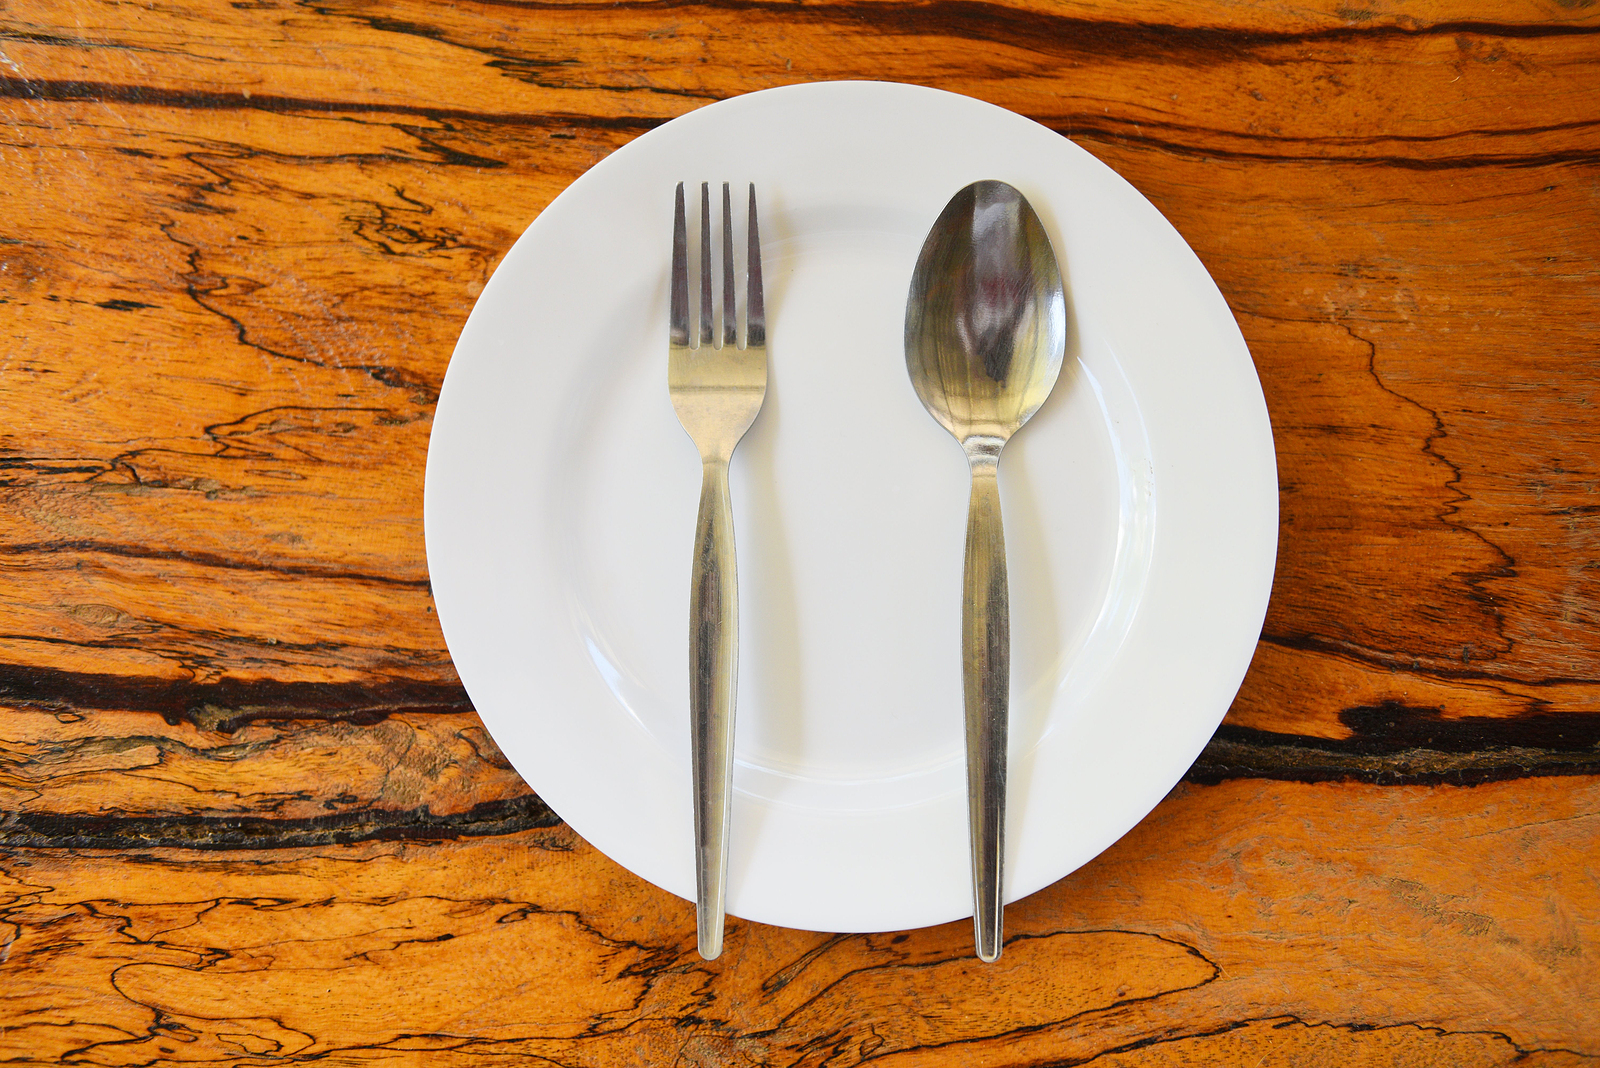 Empty Plate With Spoon Fork On Food Table Wooden Background / Em